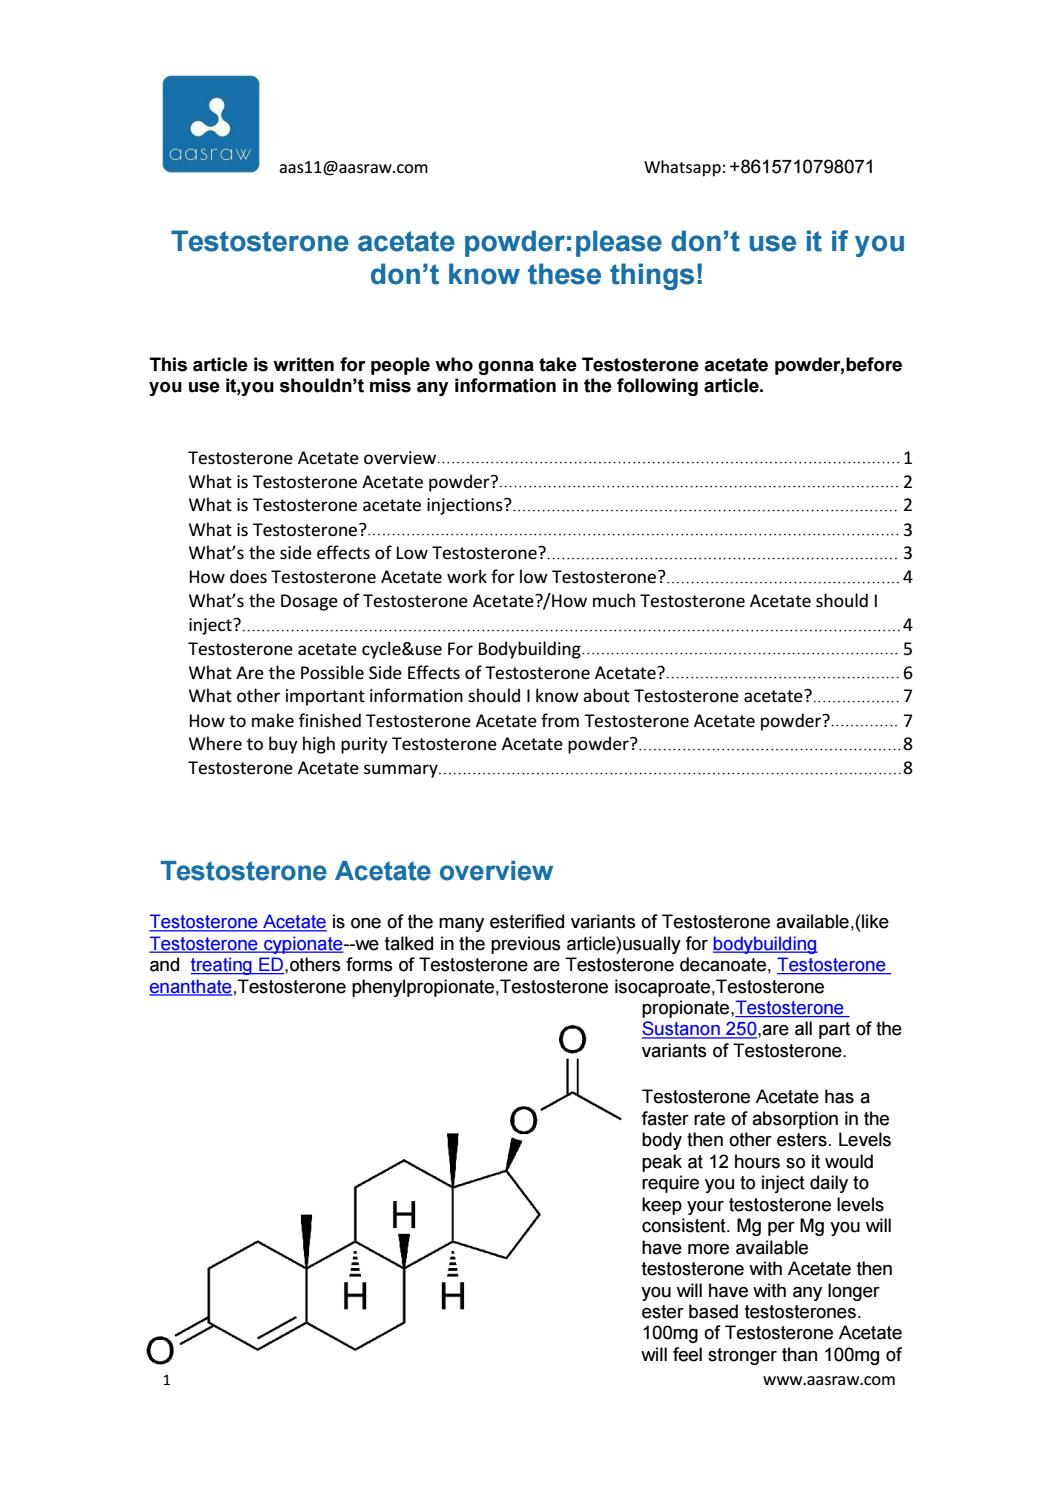 Testosterone acetate powder:please don't use it if you don't